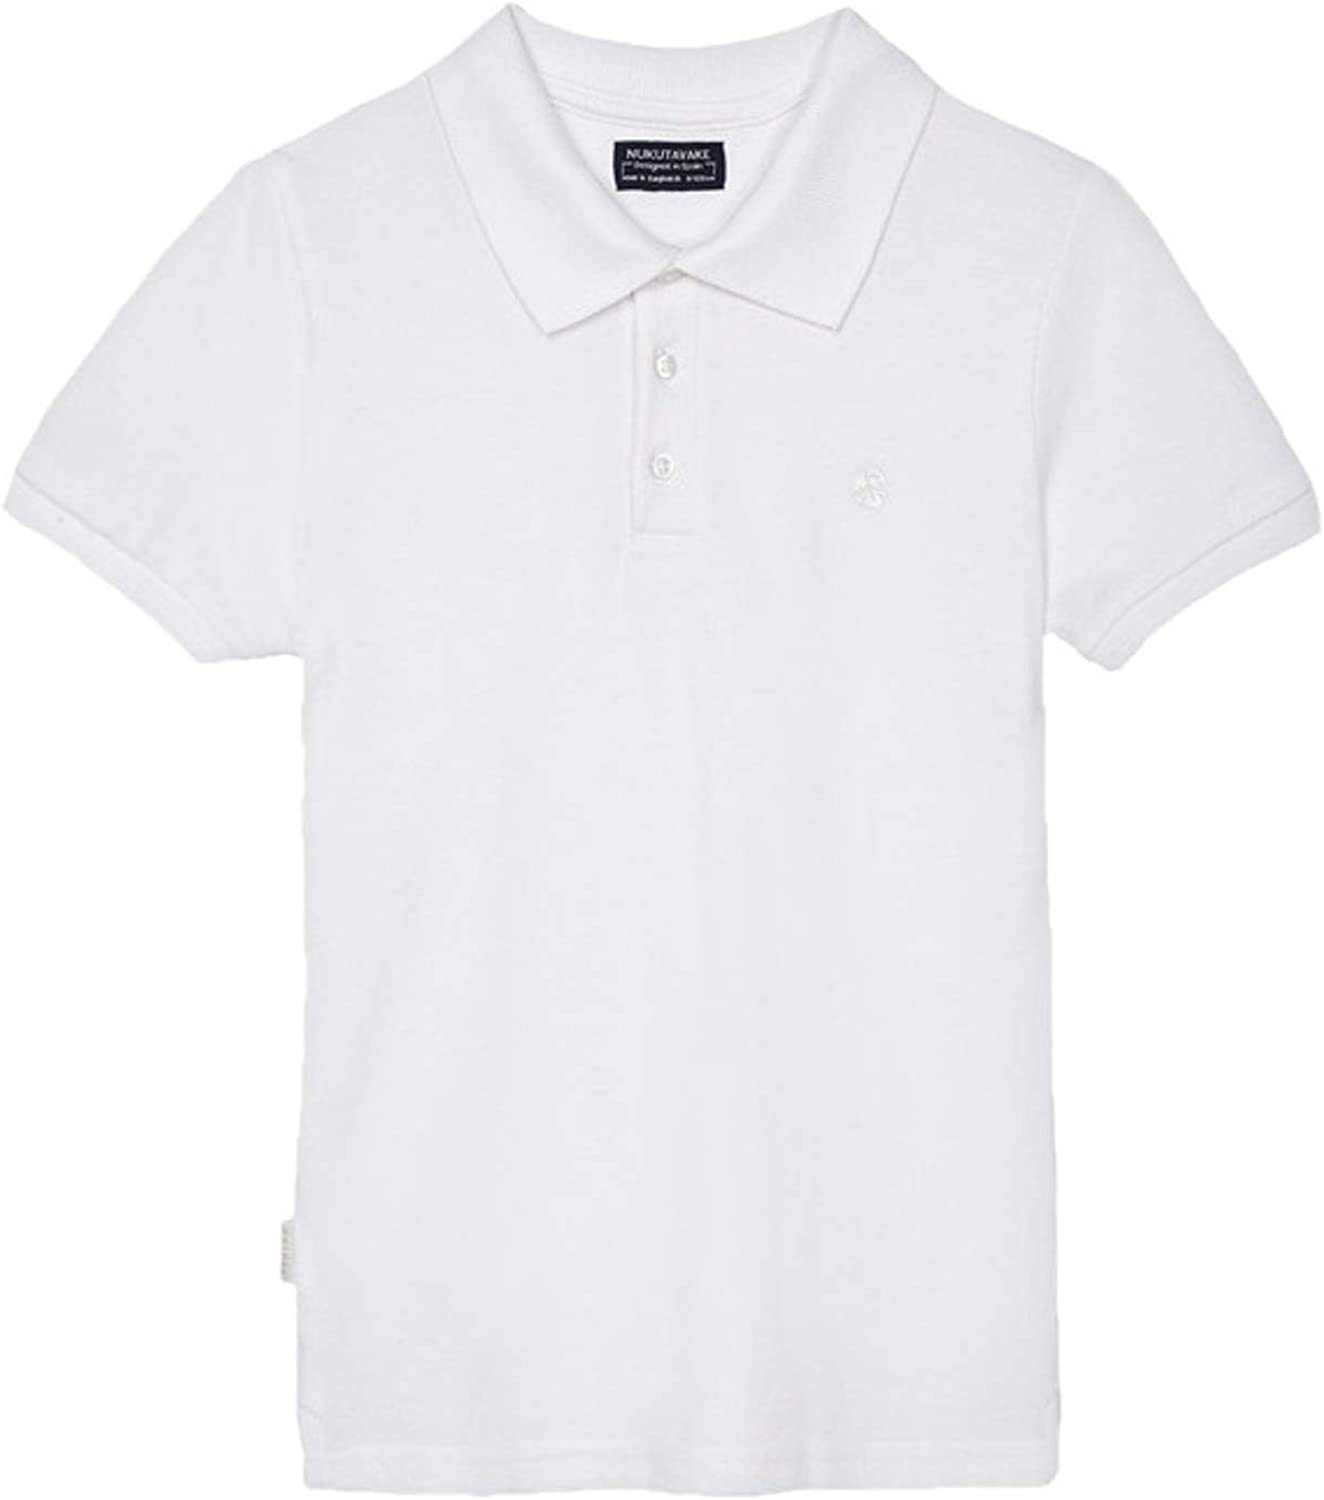 Mayoral - Basic s/s Polo for Boys - 0890, White